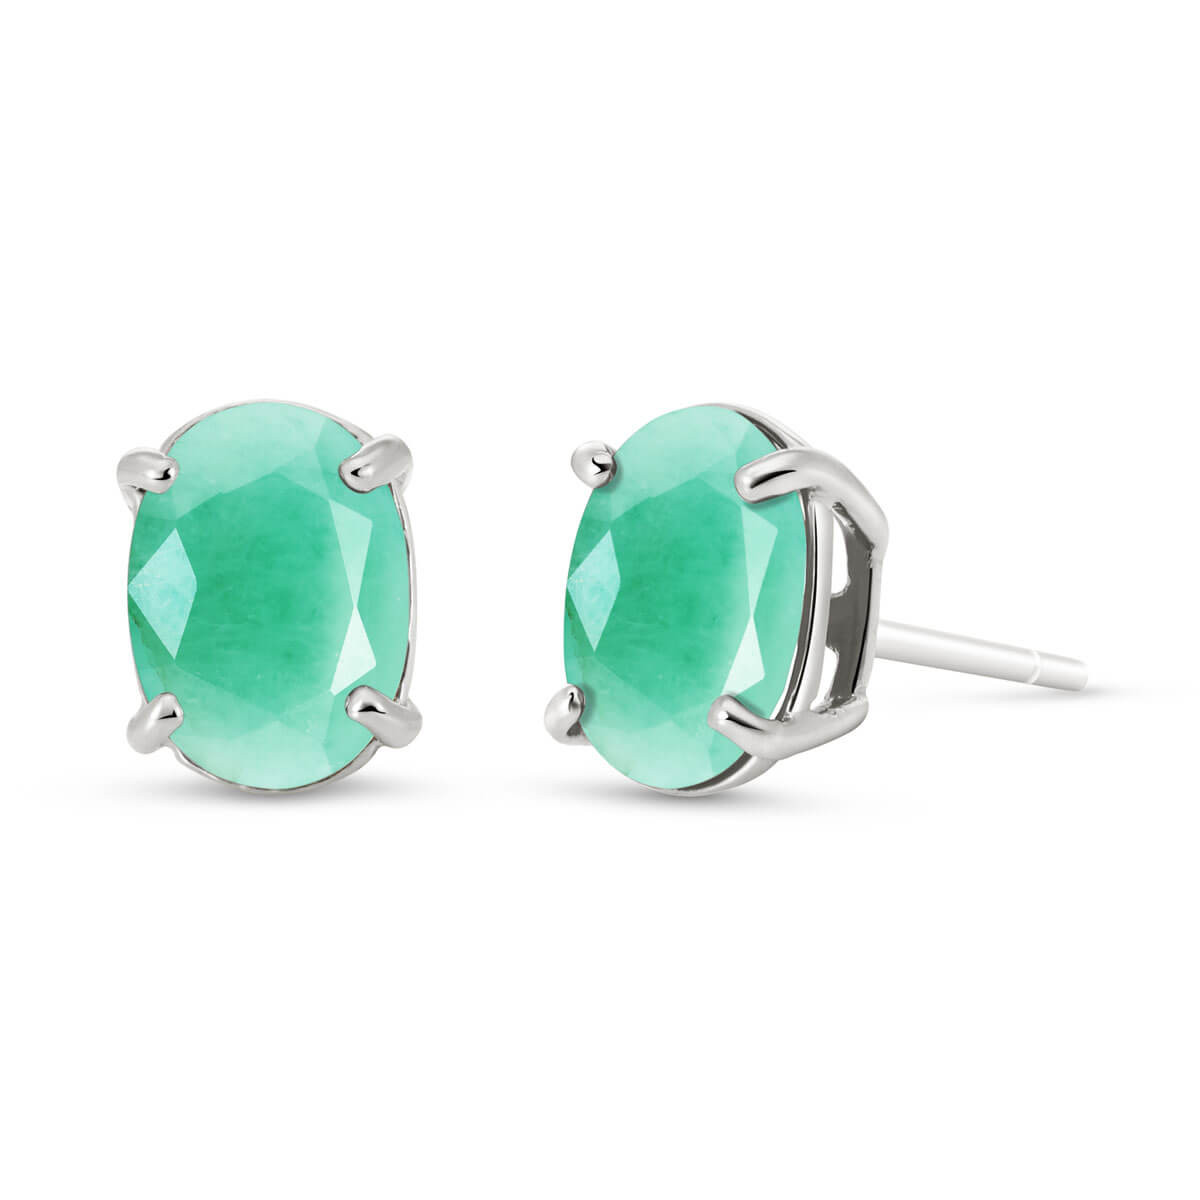 Emerald Stud Earrings 1.5 ctw in 9ct White Gold